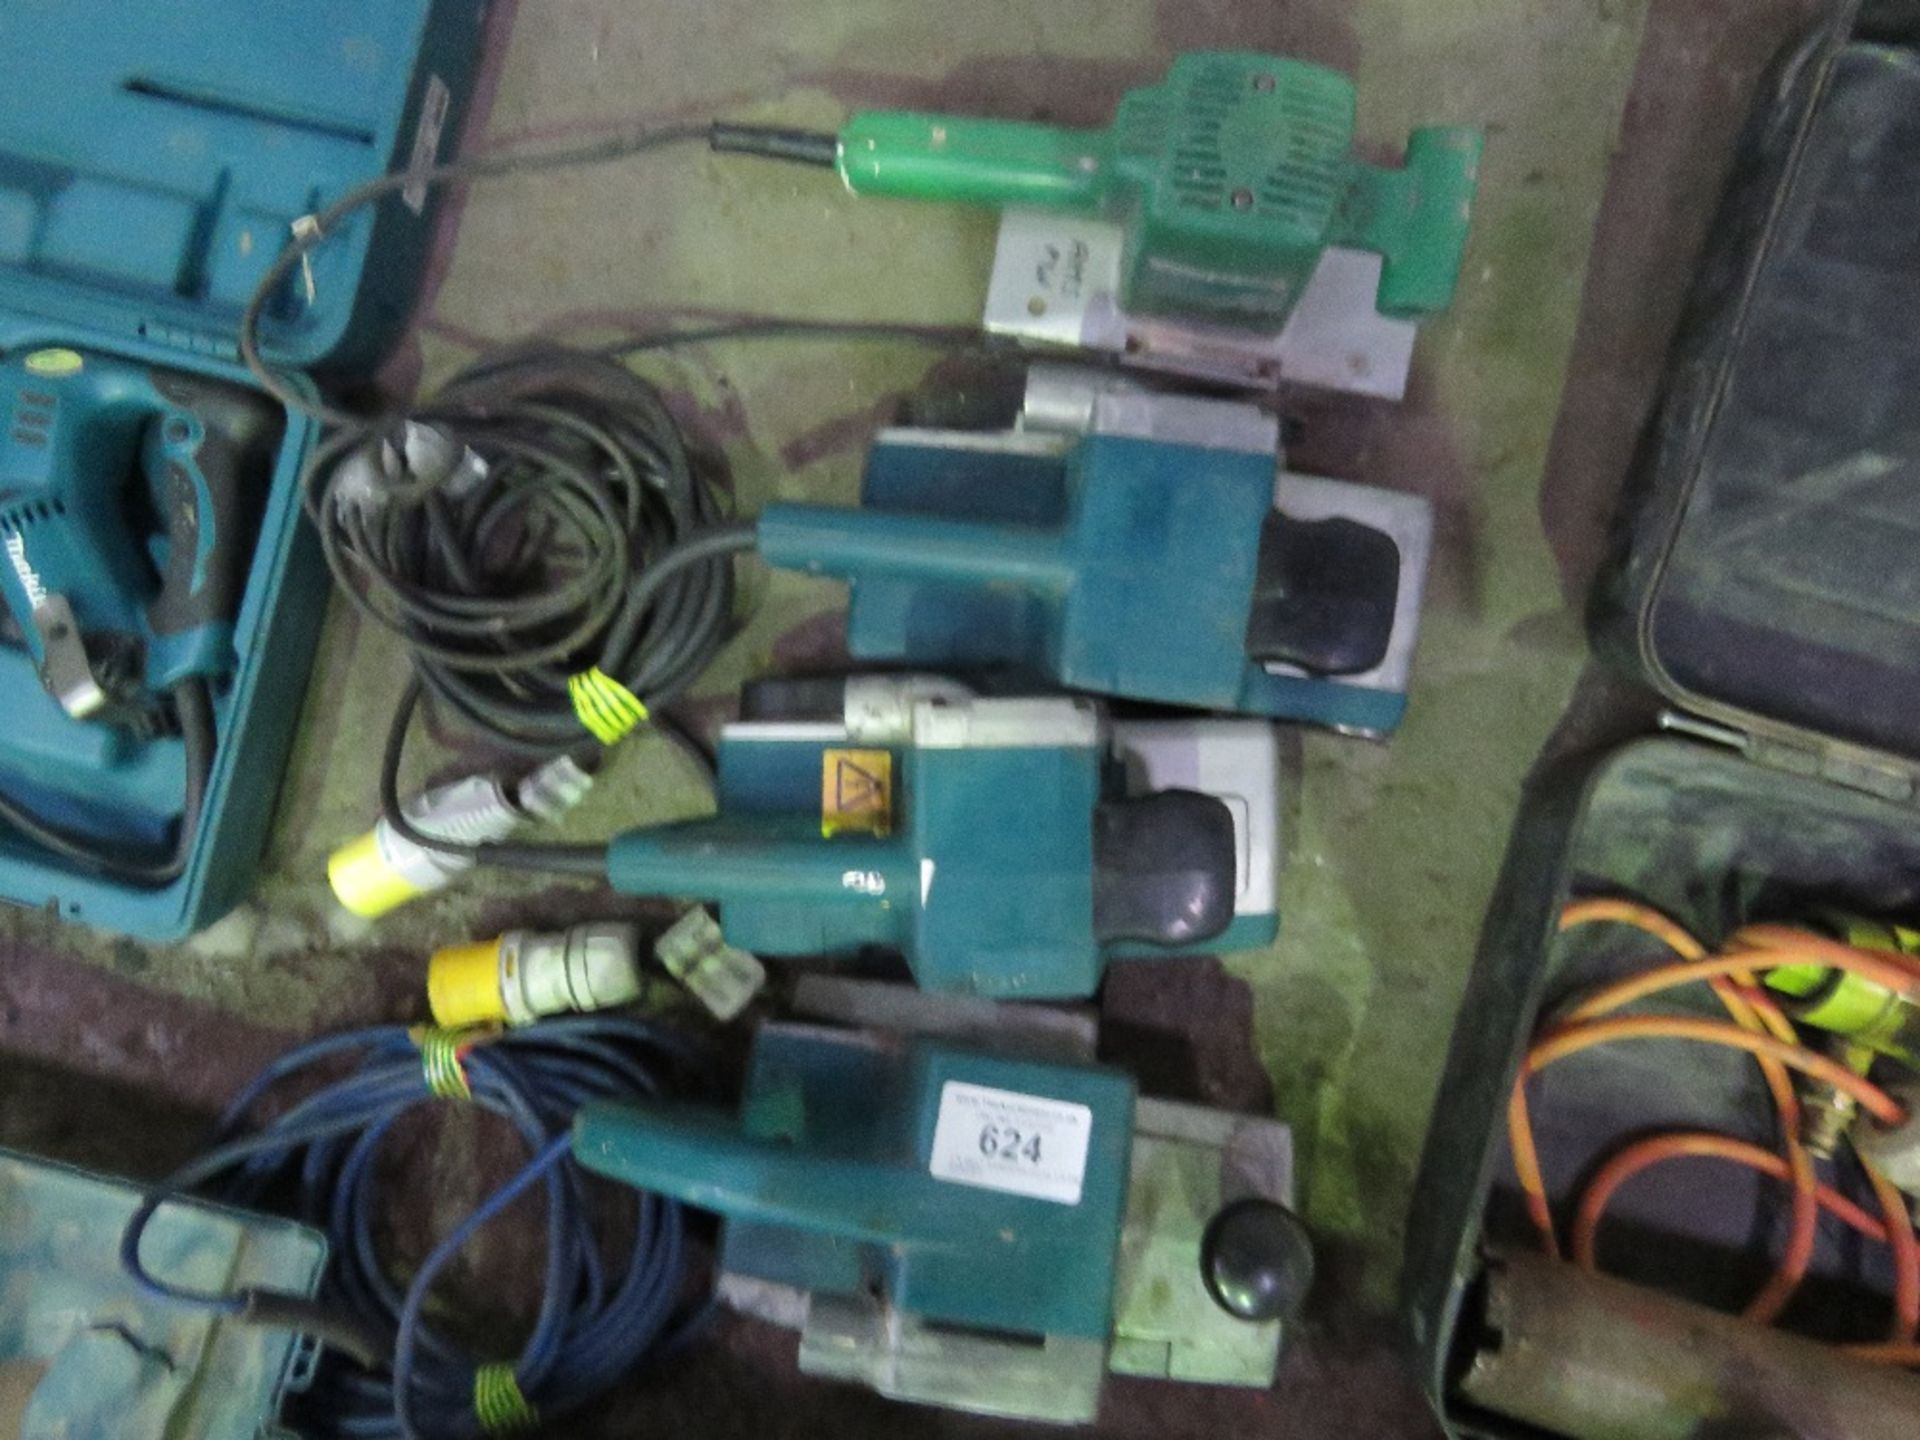 Lot 624 - 3 X BELT SANDERS PLUS 1 X PALM SANDER